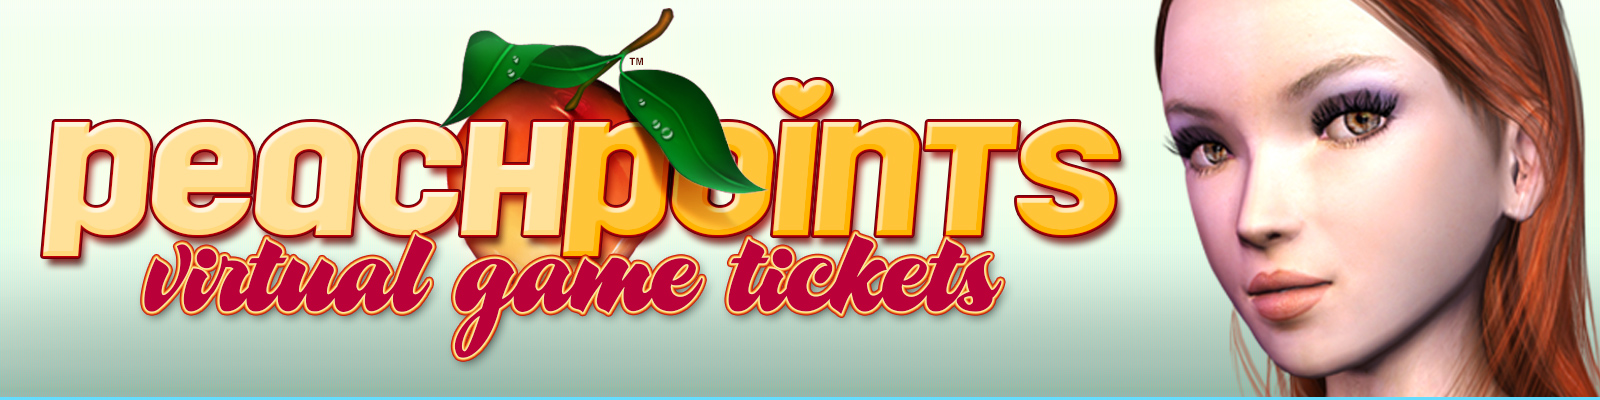 Peach Points : (35,000) Virtual Game Tickets